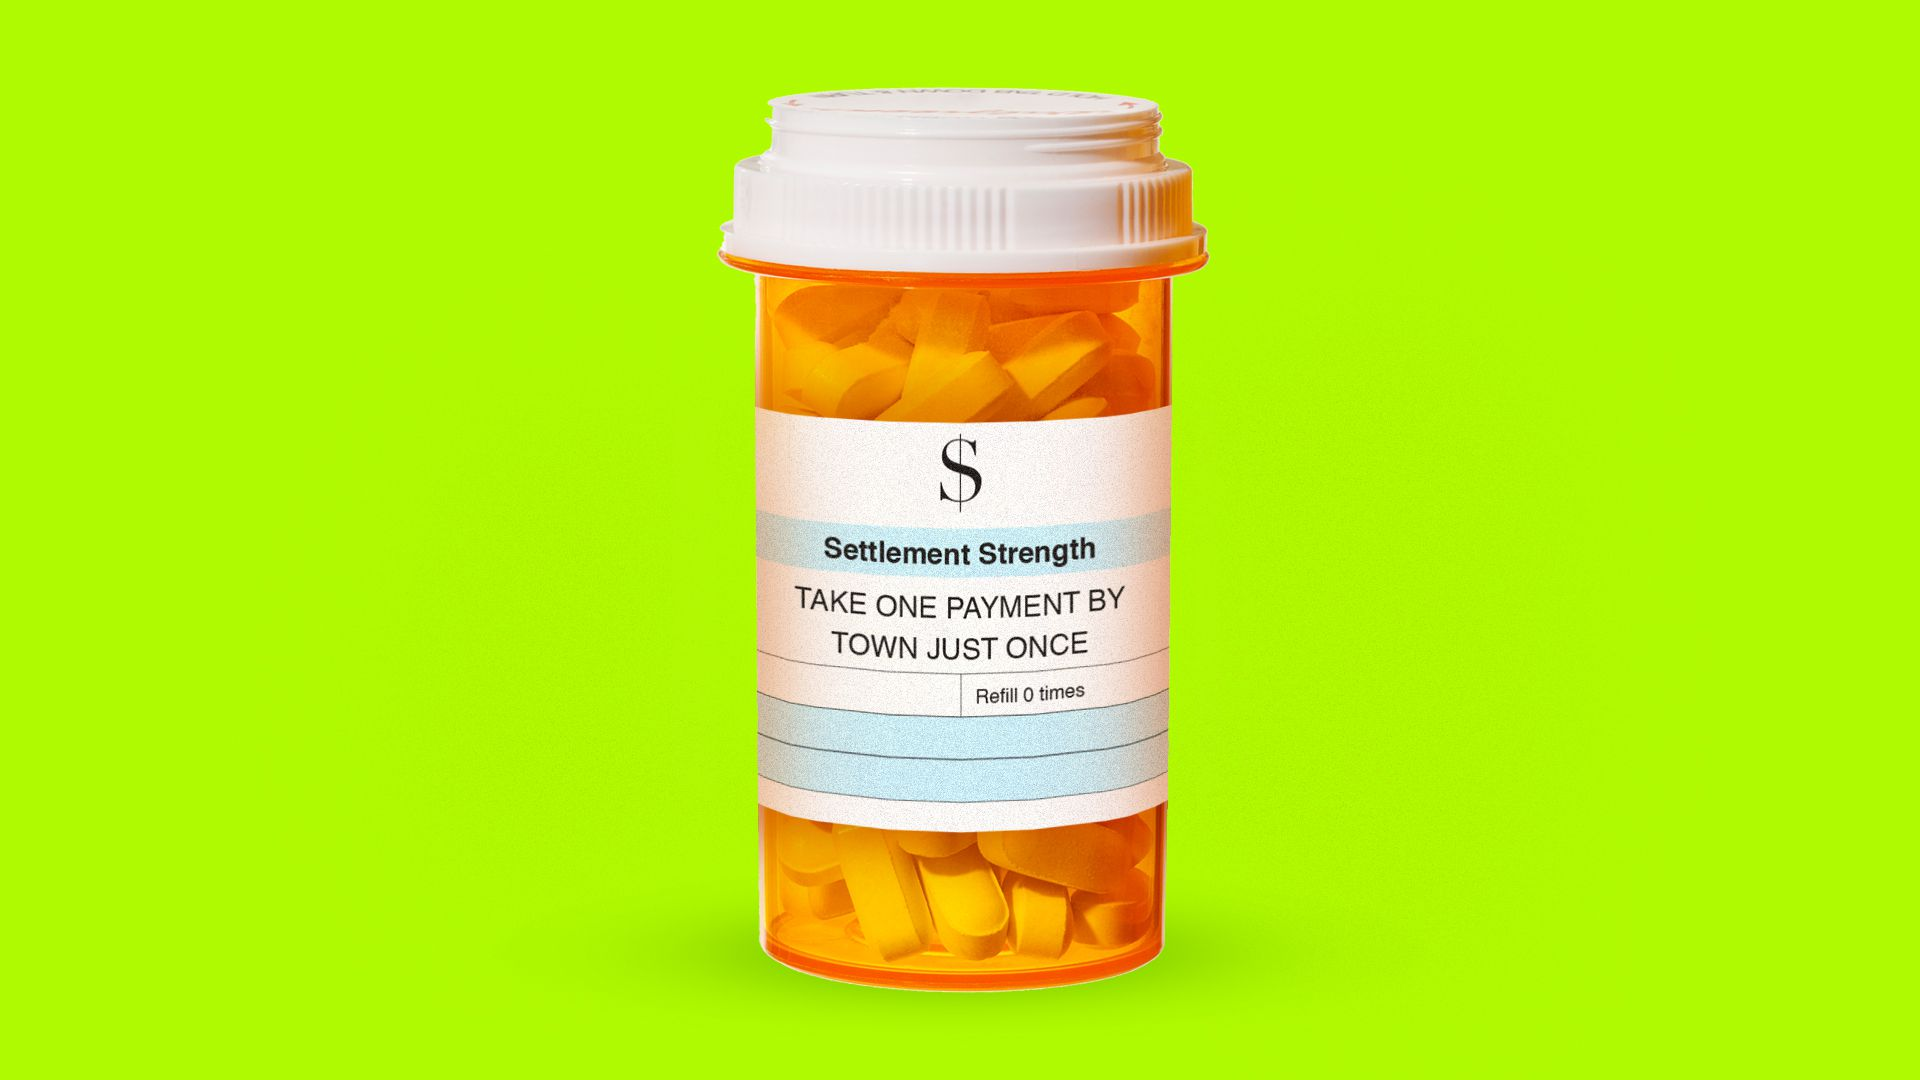 A pill bottle that talks about an opioid lawsuit settlement on the label